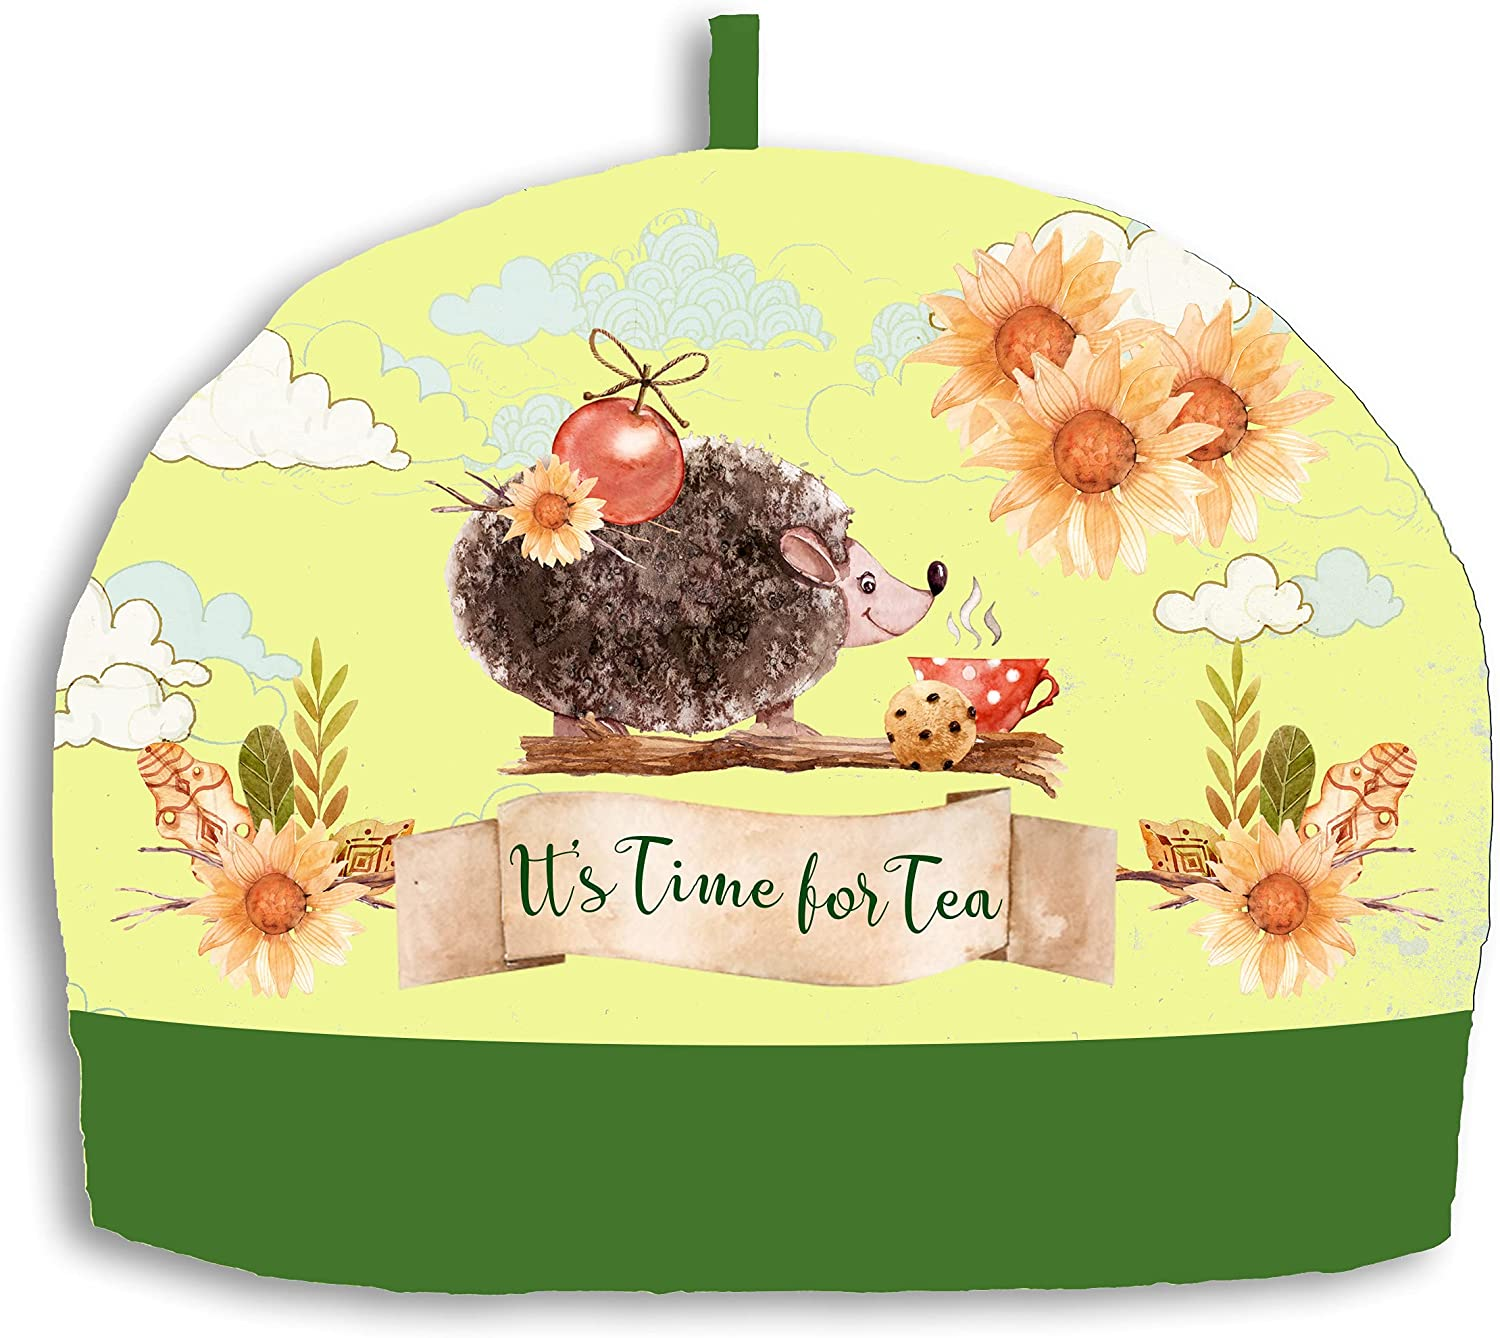 Max 76% OFF Whimsly Tea Cozy New life 6-8 Cup Hedgehog Friendly Insulated Size Design